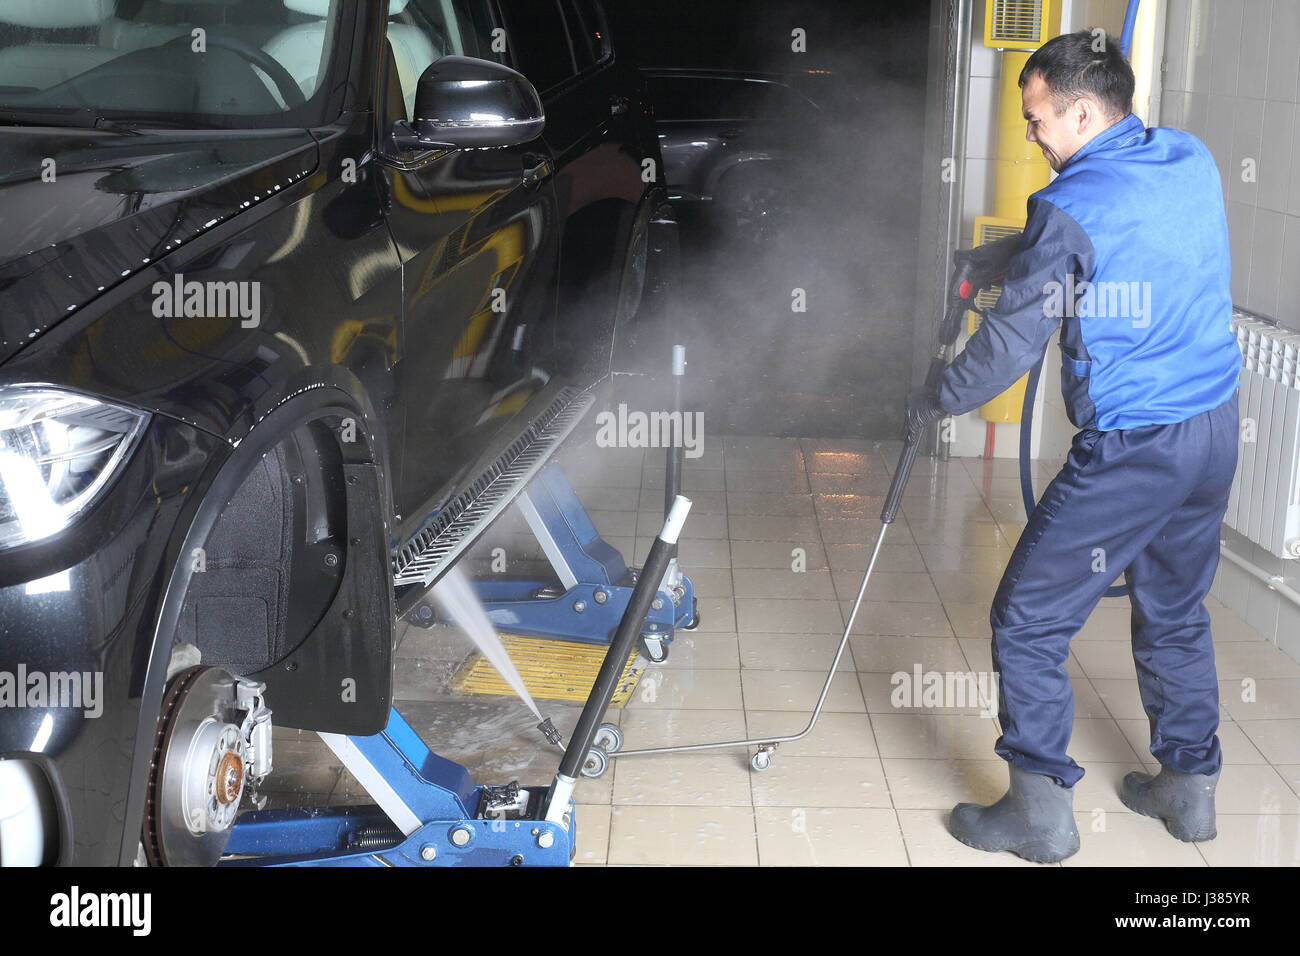 Car Cleaning Cleaning Service Business Stockfotos & Car Cleaning ...